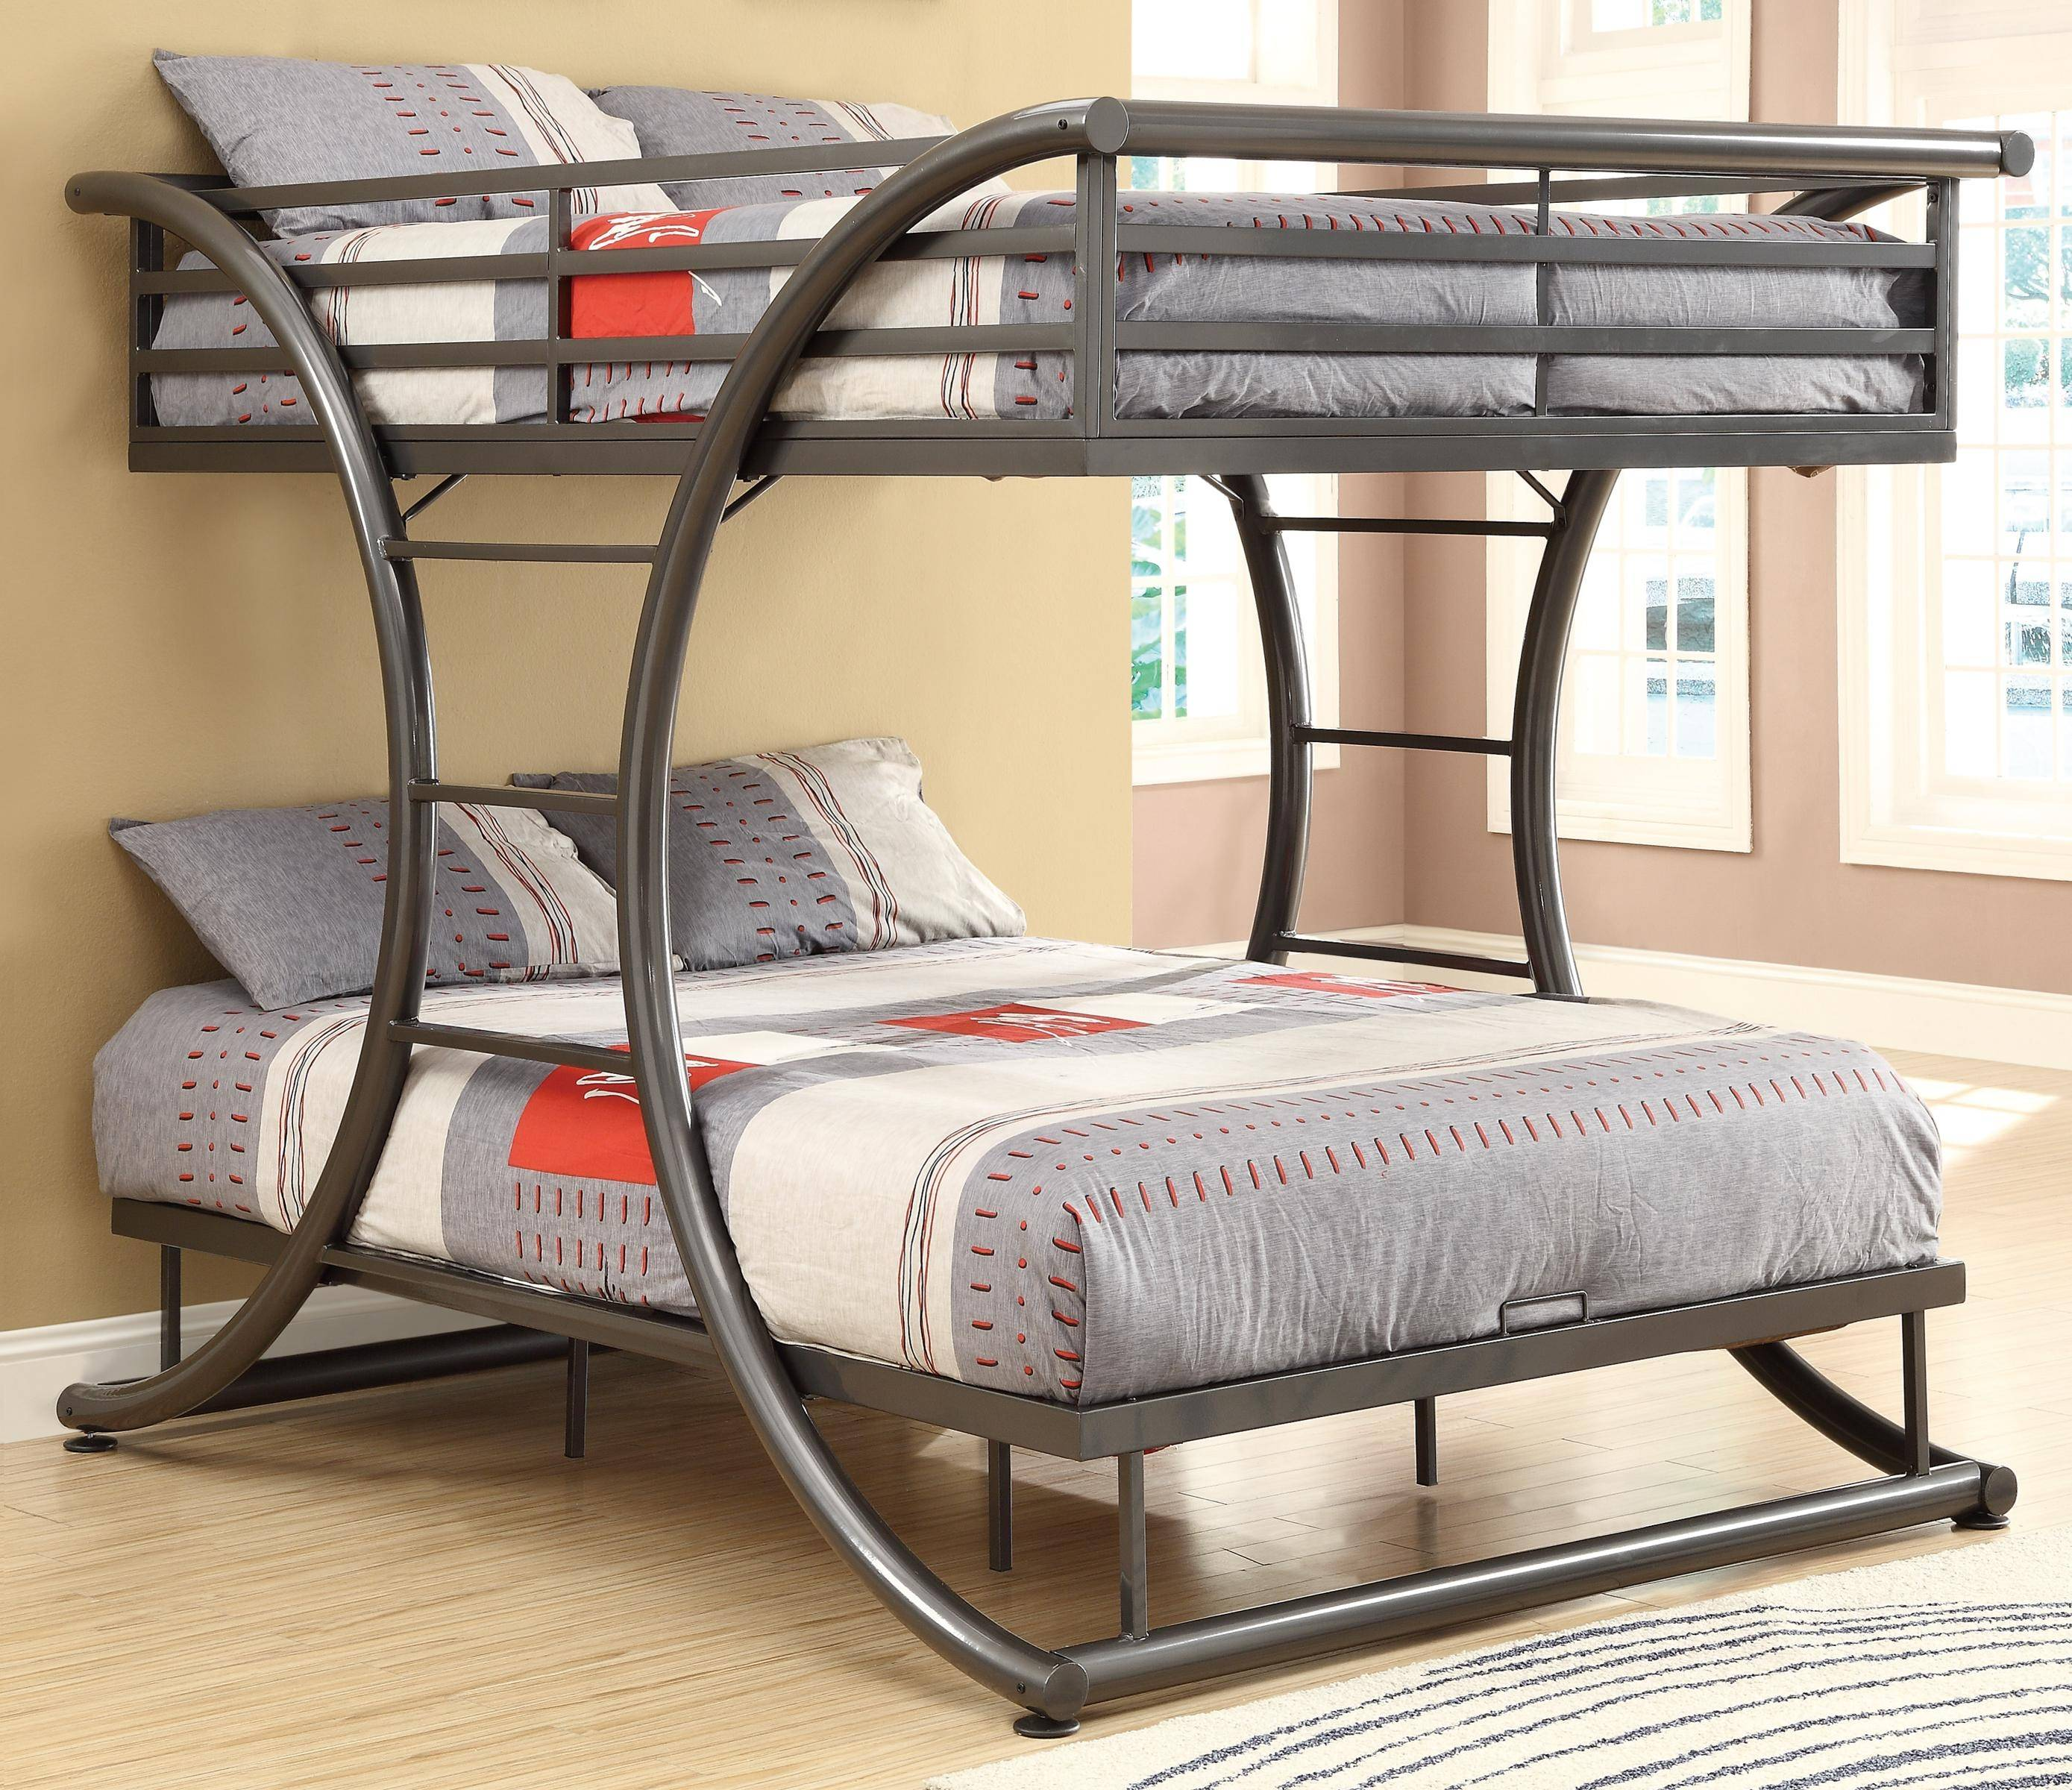 Image result for double over double bunk beds uk